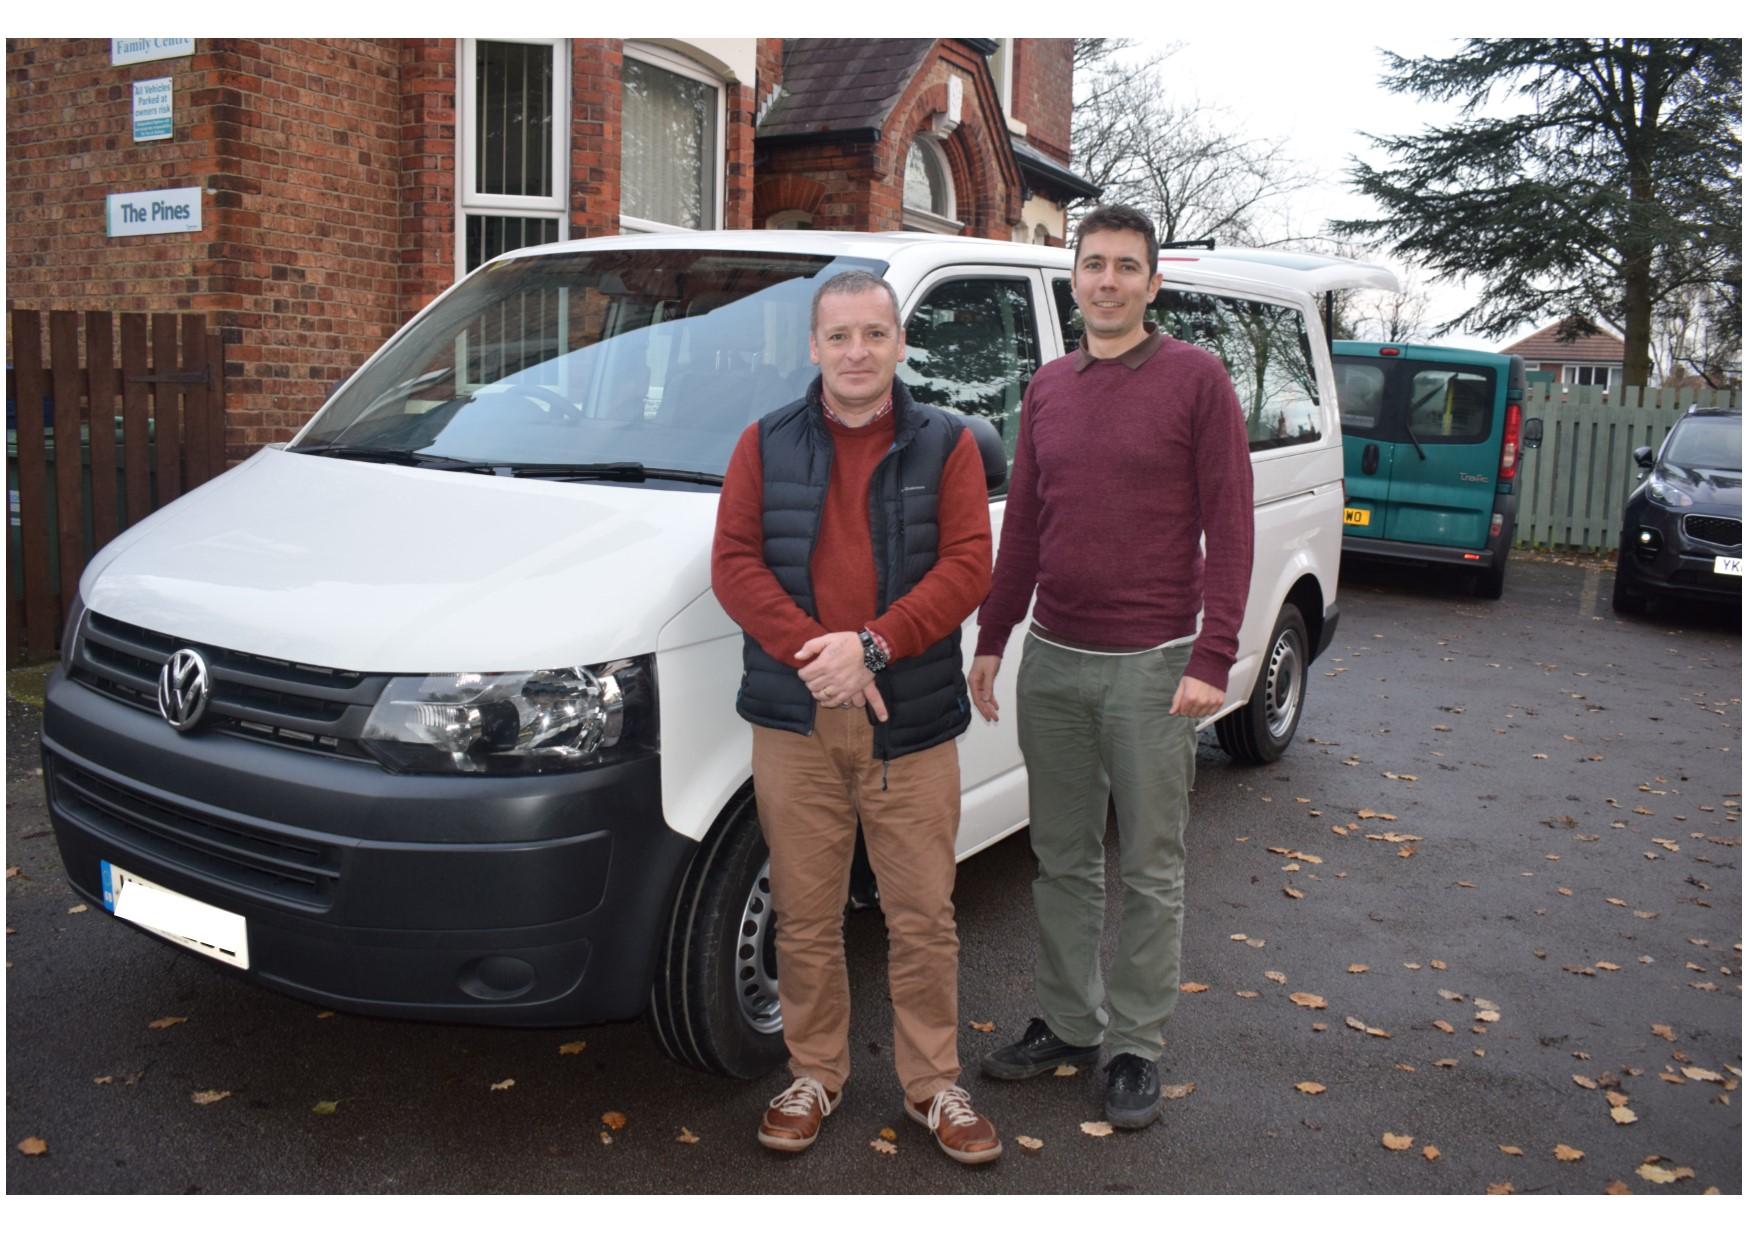 White minibus with two men standing next to it